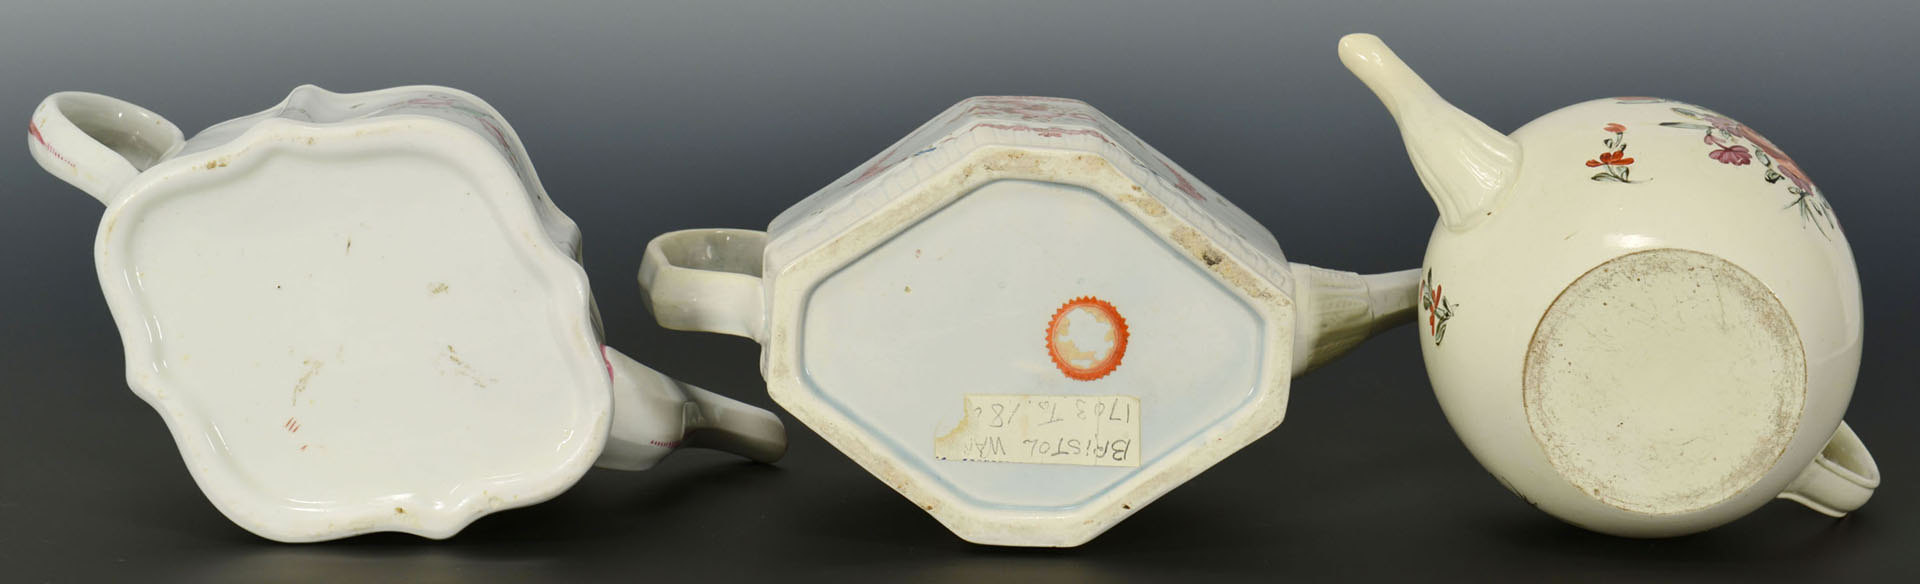 Lot 462: 3 English teapots including pearlware, creamware